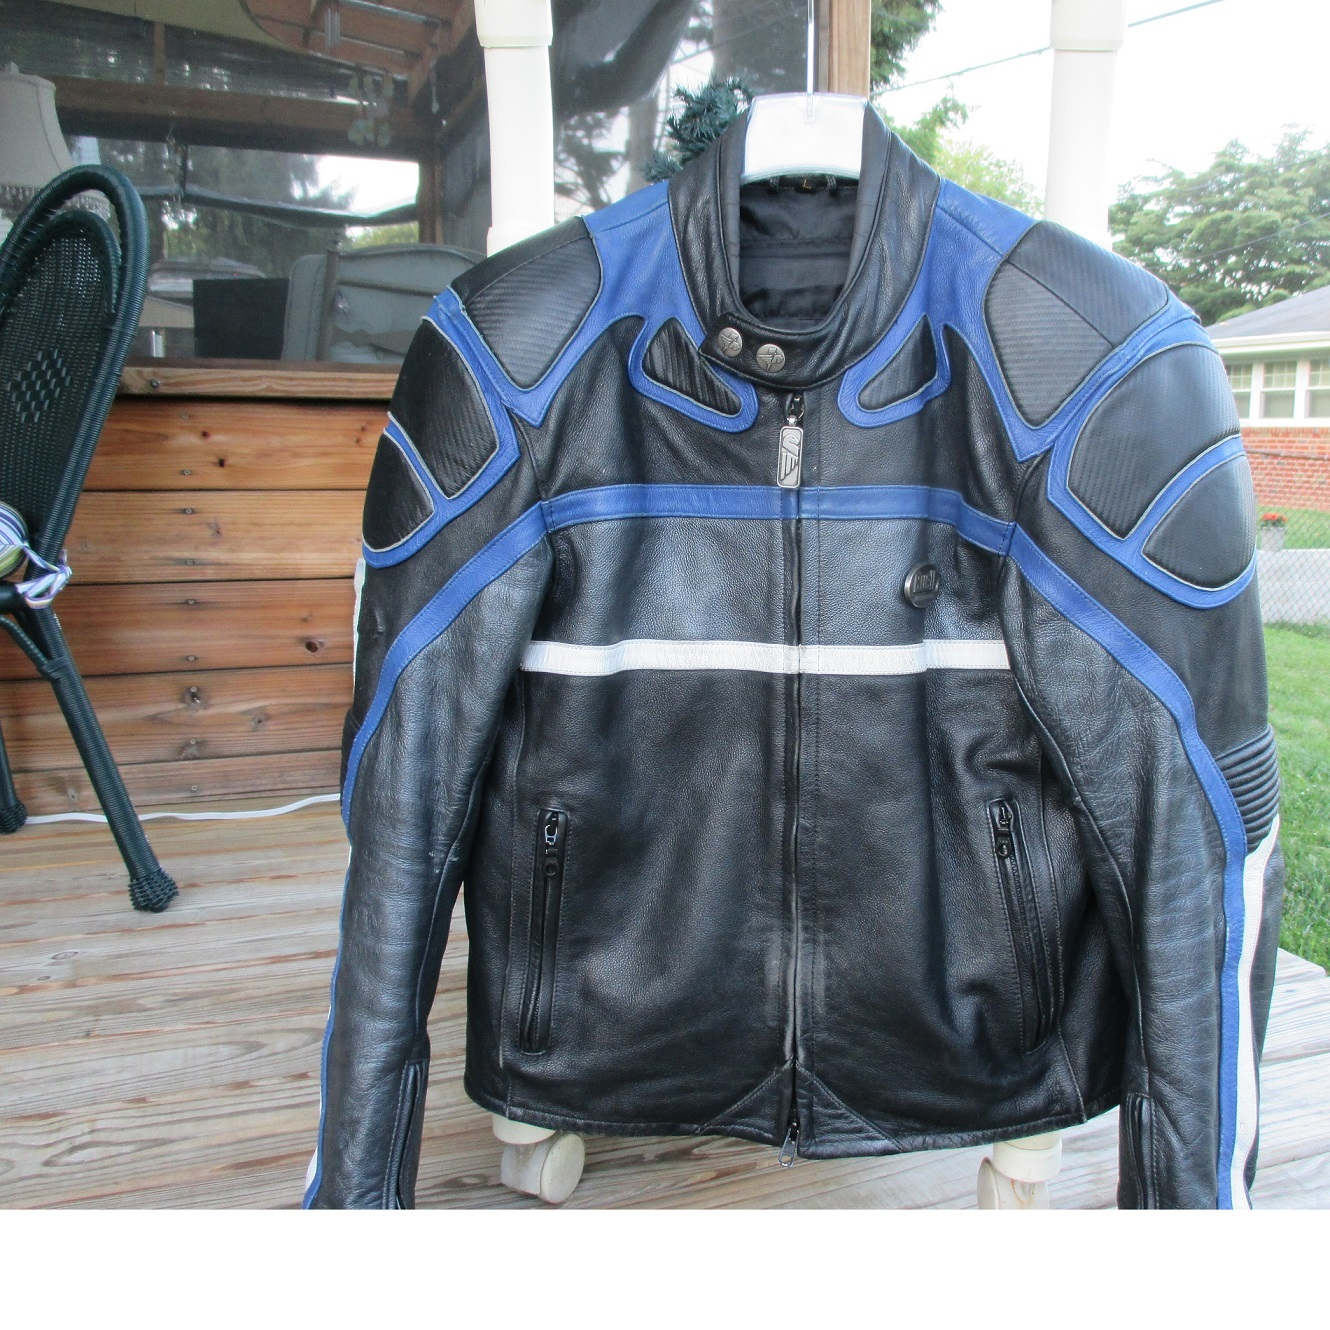 Buell leather jacket